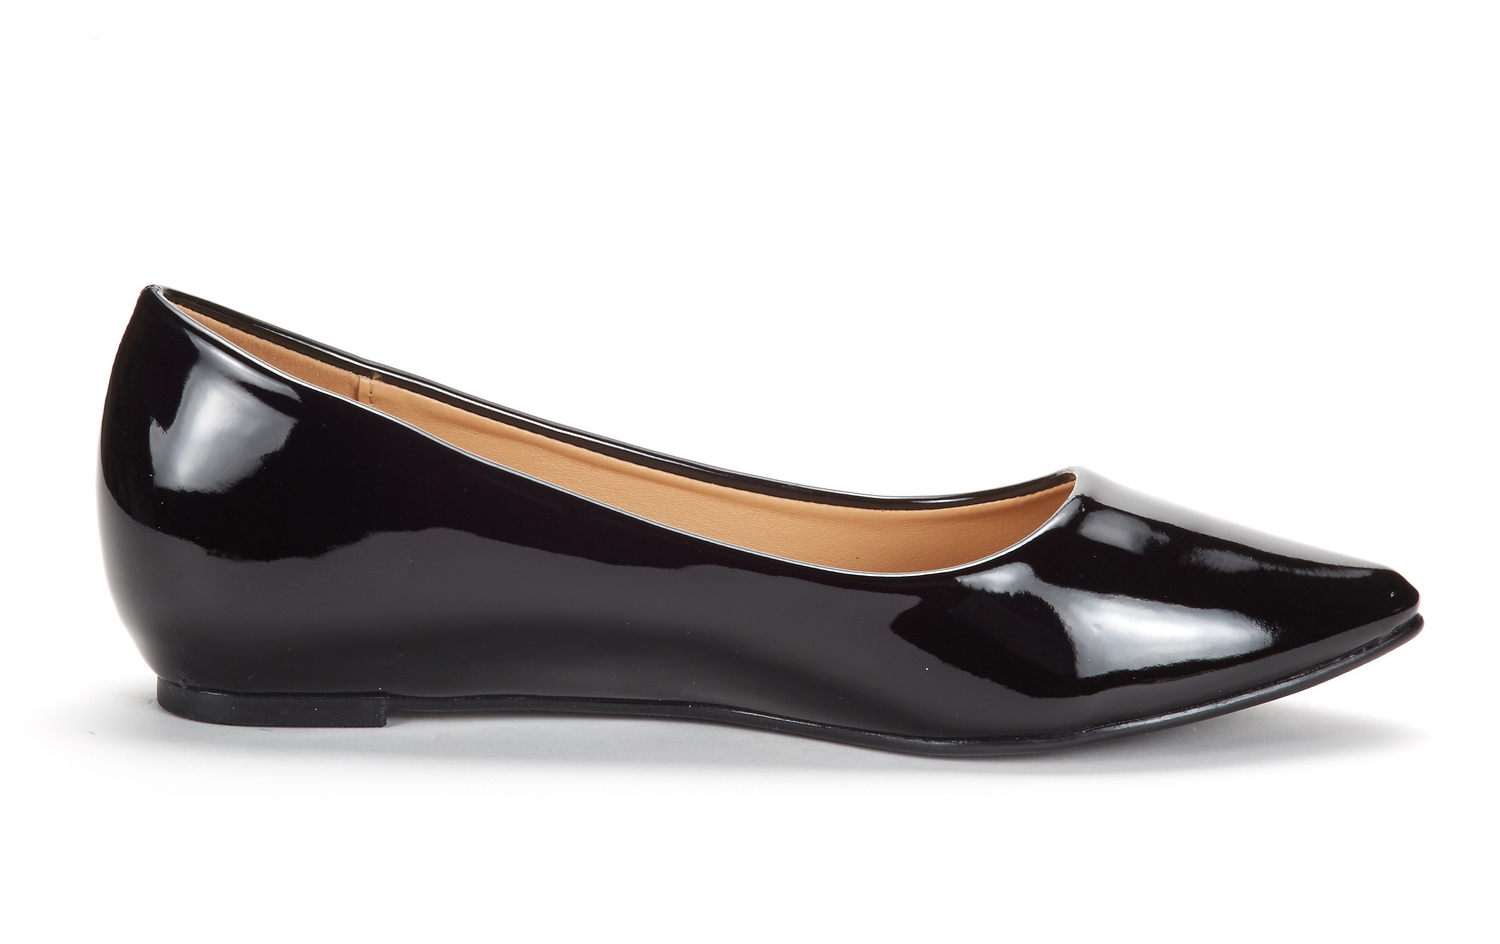 DREAM-PAIRS-Women-Low-Wedge-Flats-Ladies-Pointed-Toe-Slip-On-Comfort-Flat-Shoes thumbnail 48